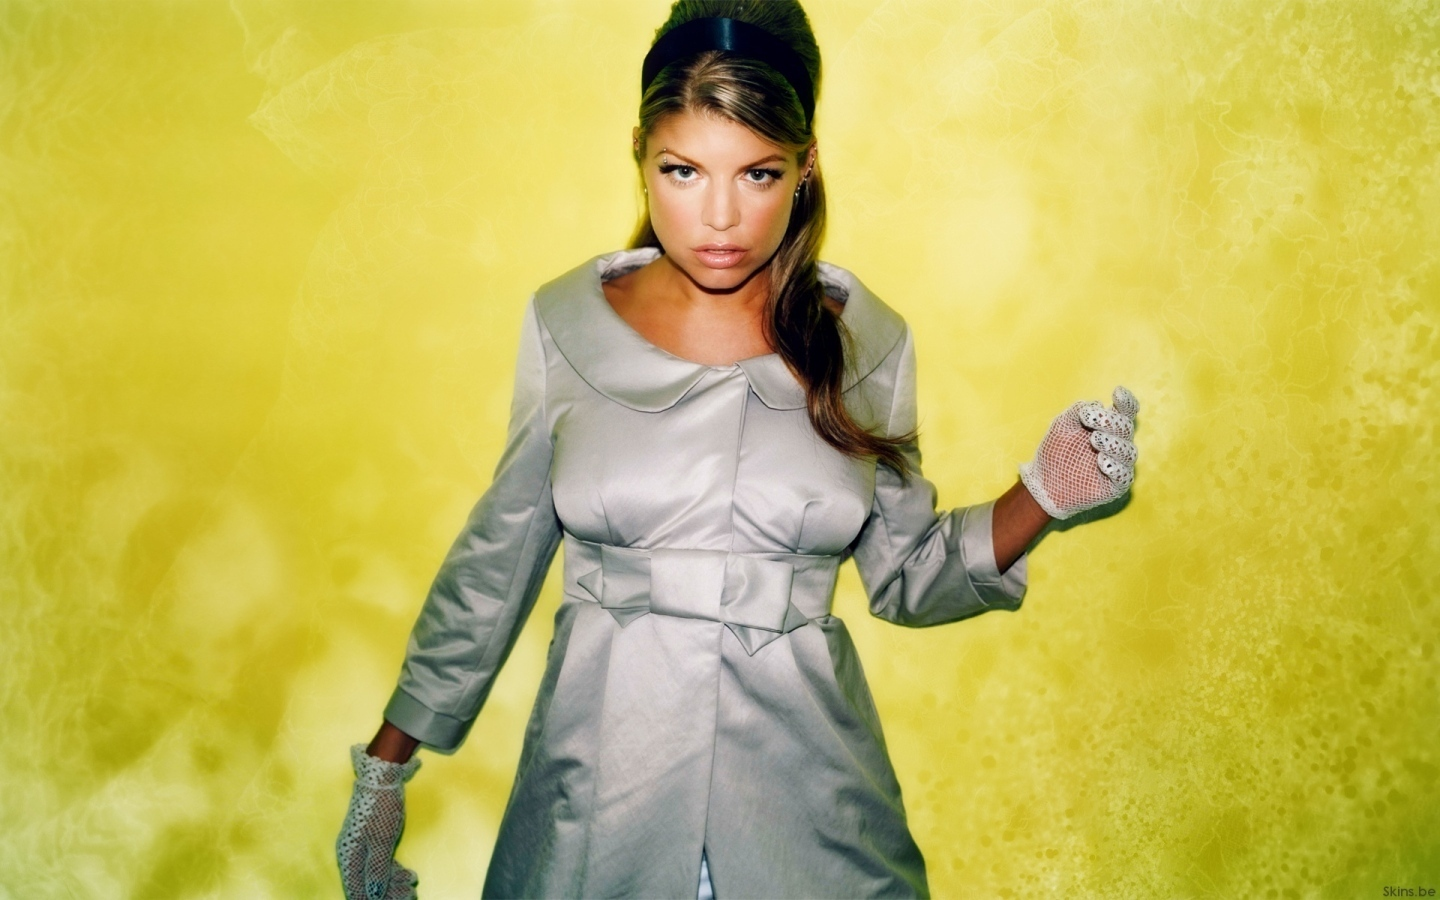 Fergie - Fergie Wallpaper (27632822) - Fanpop